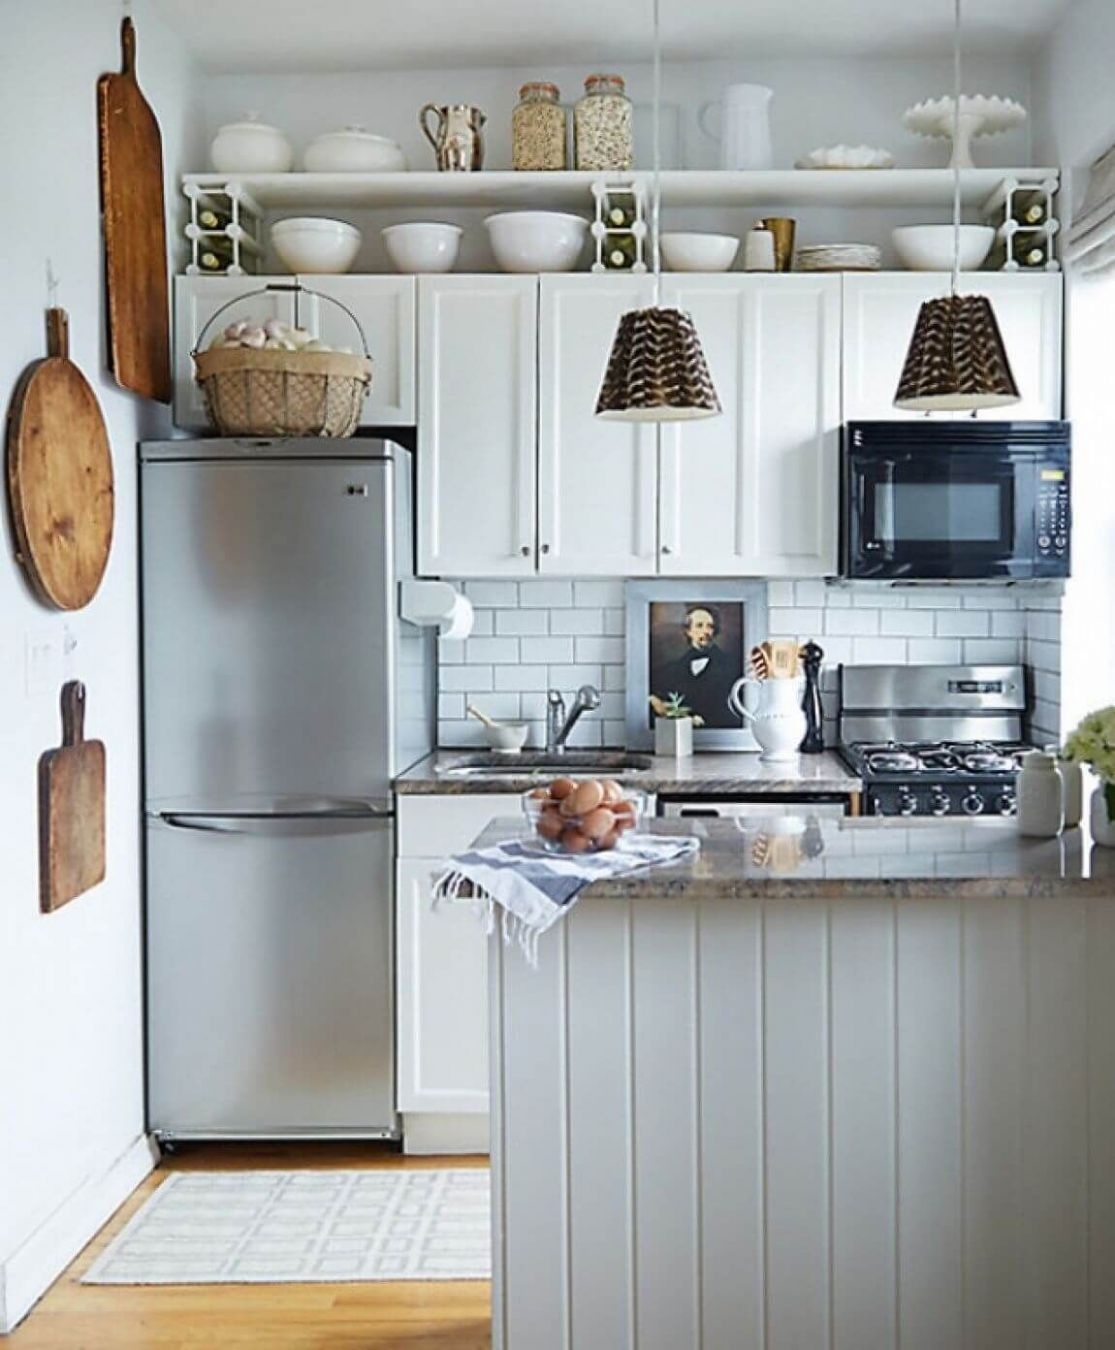 10 Small Kitchen Decor Ideas On a Budget to Maximize Existing the ...